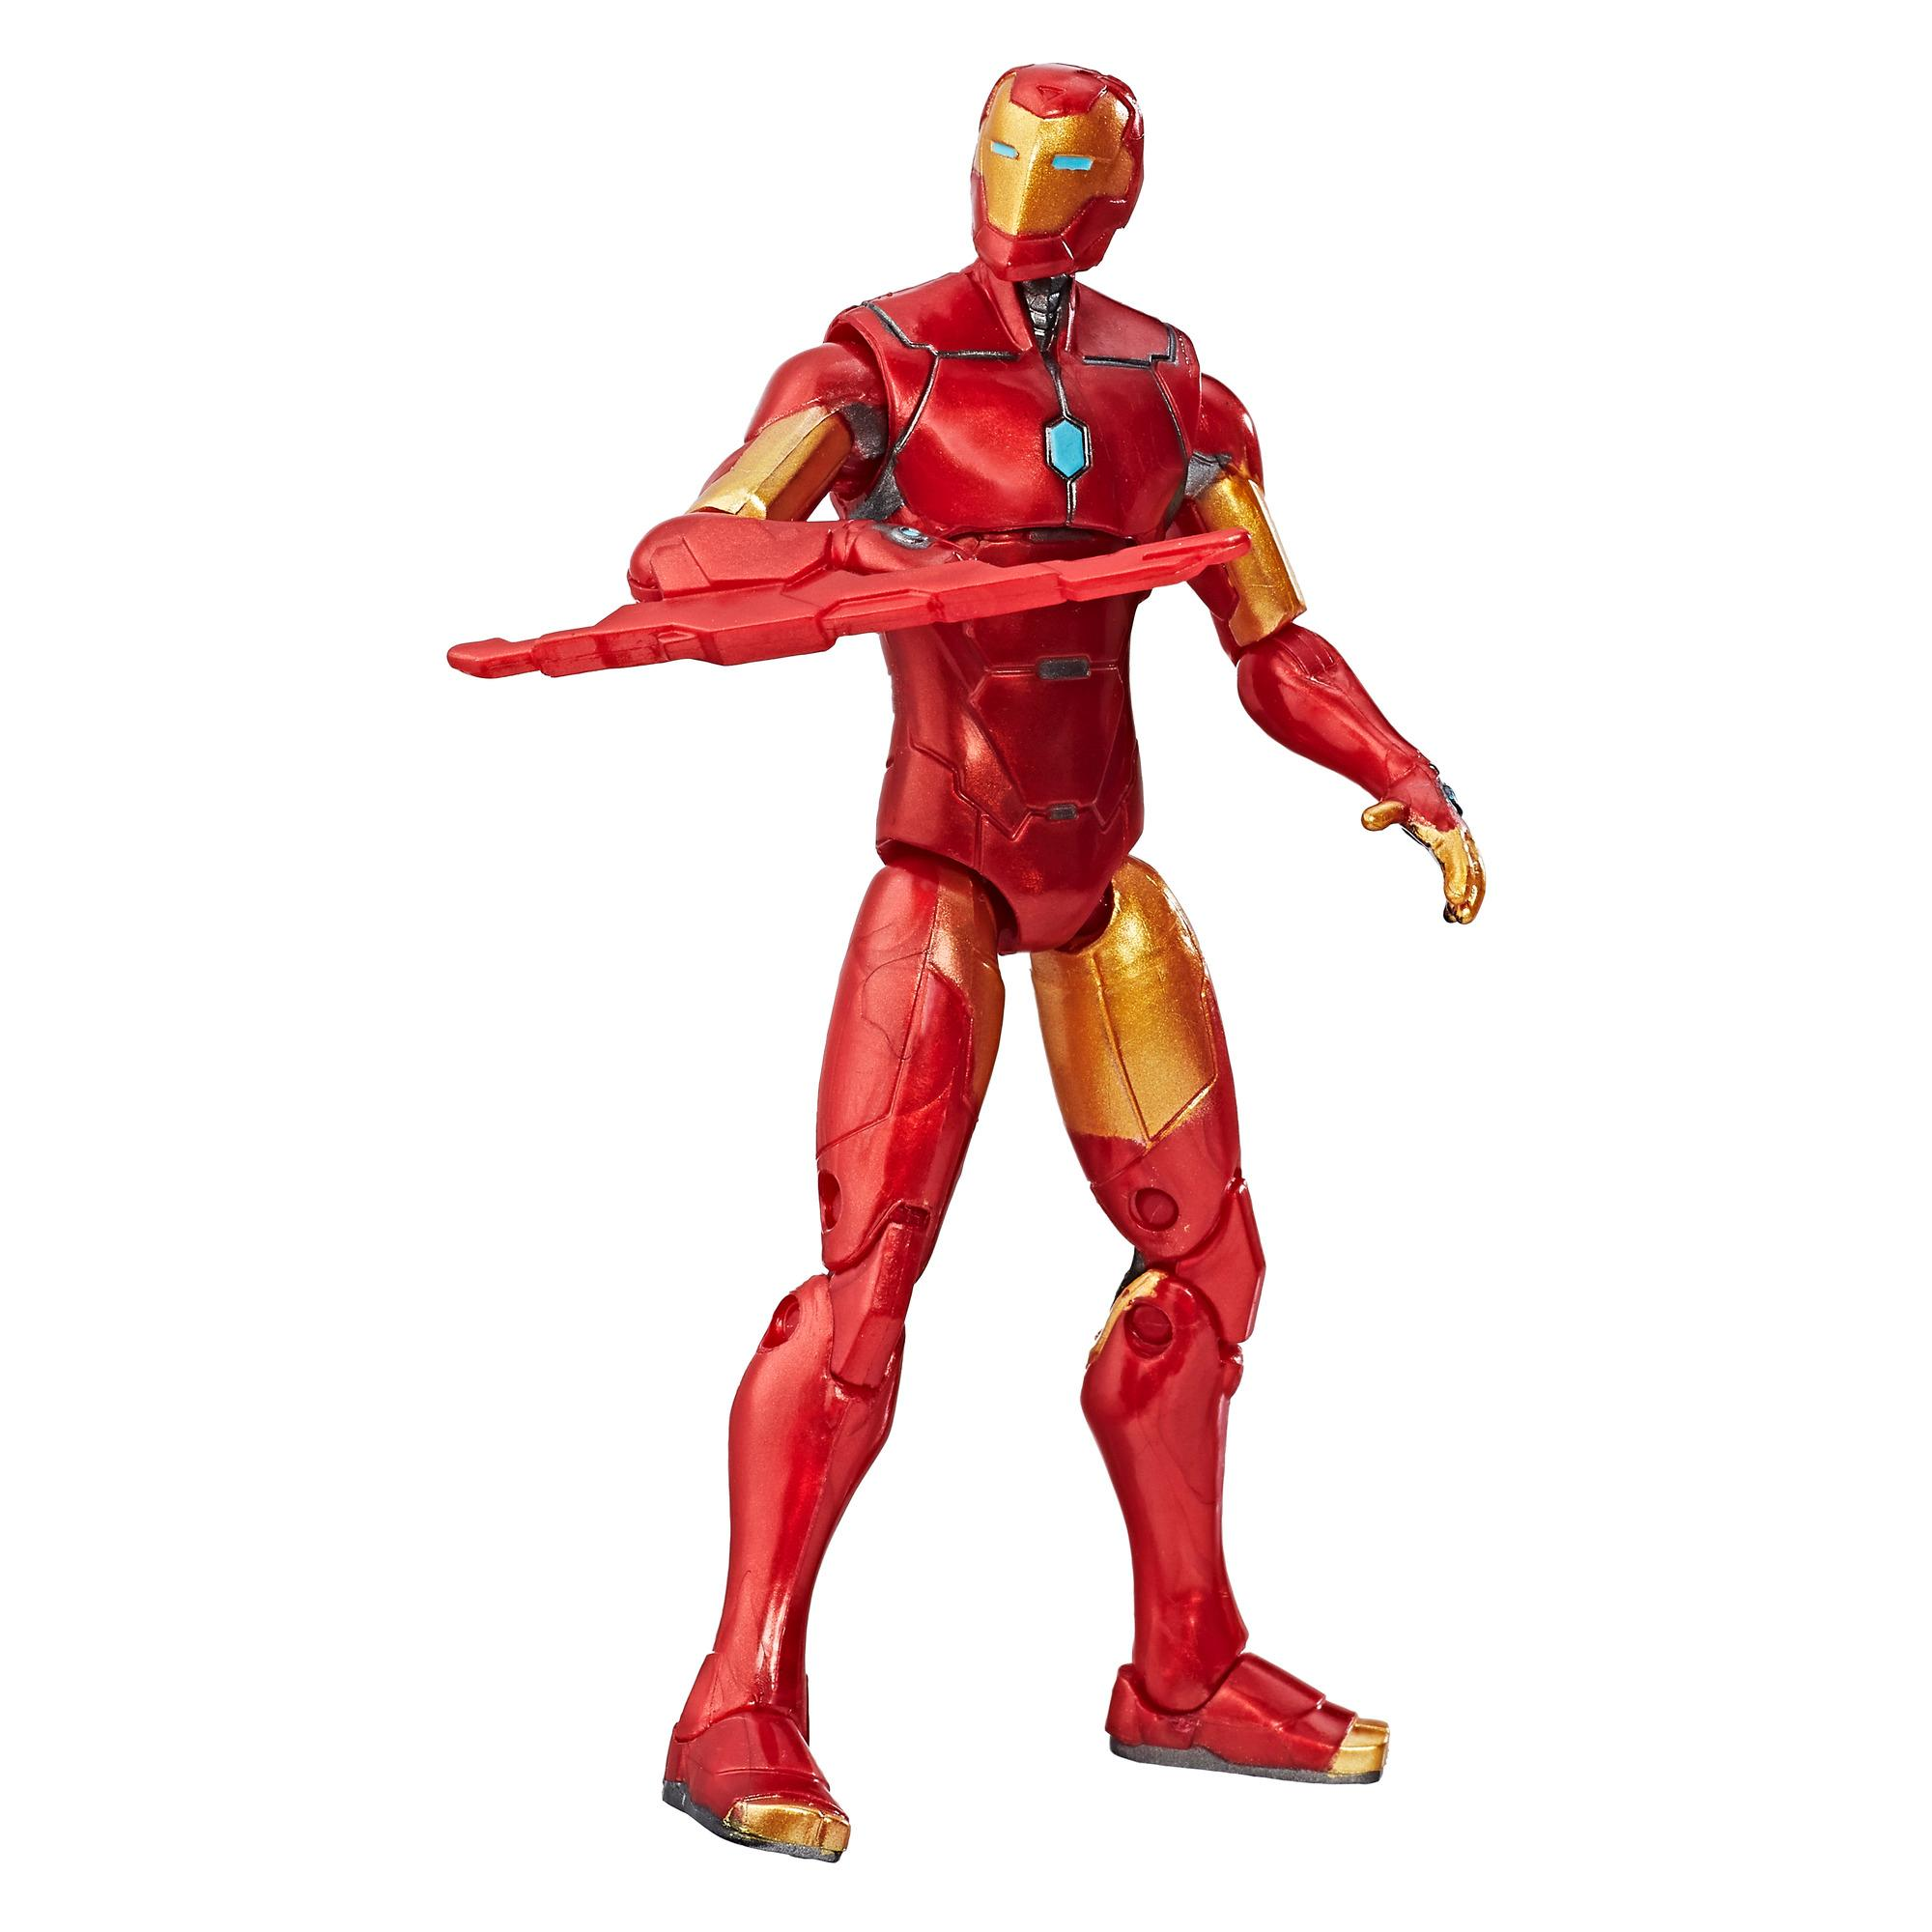 MARVEL LEGENDS FIGURINE INVINCIBLE IRON MAN